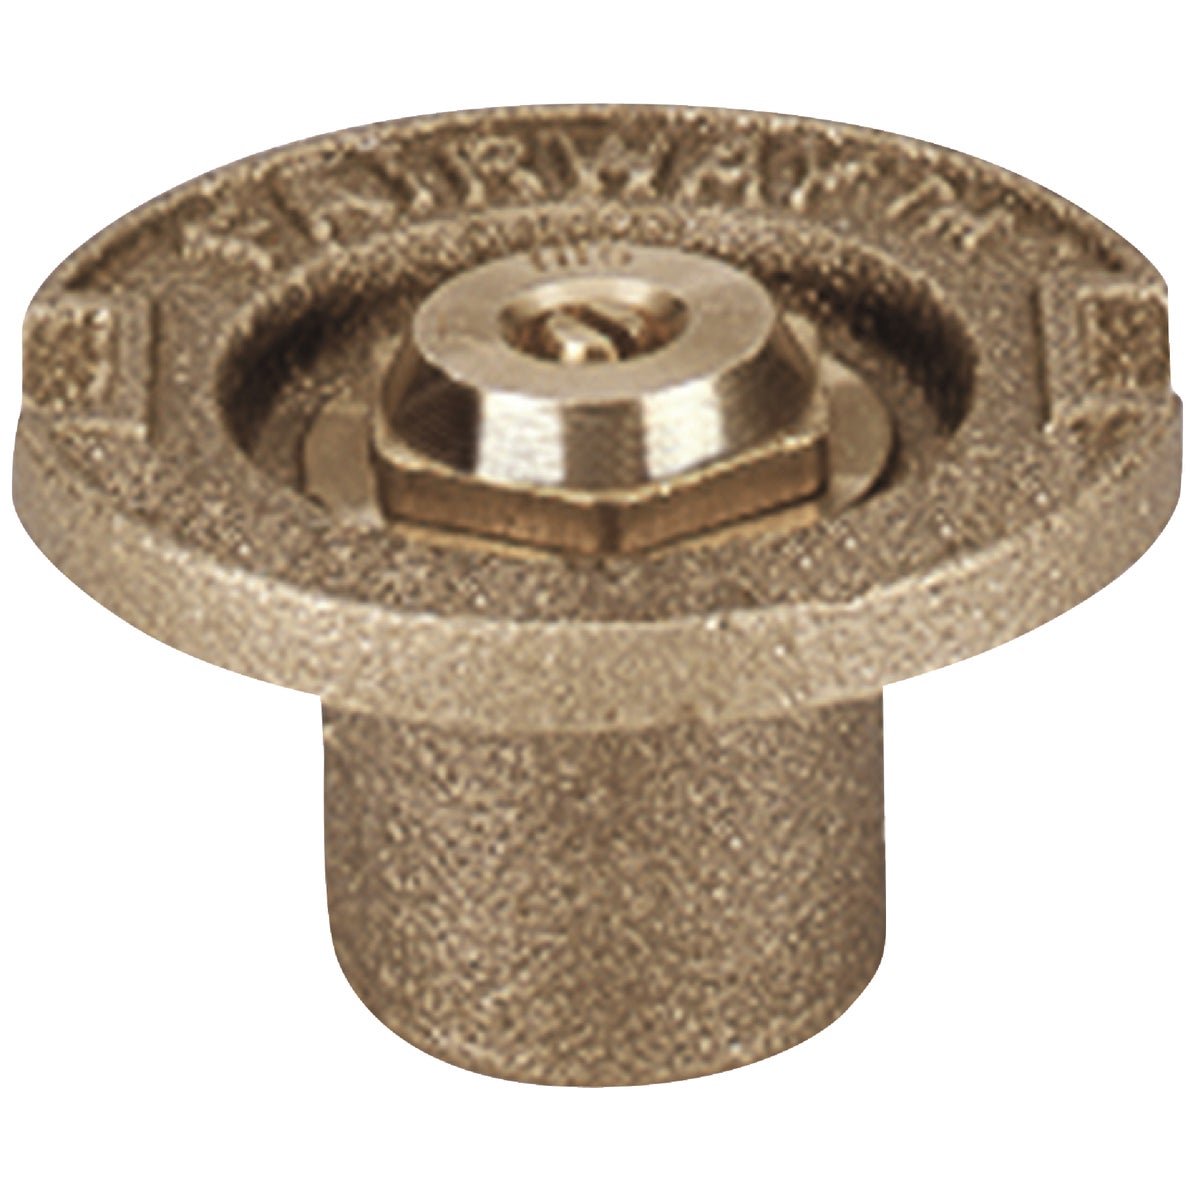 QT BRASS FLUSH SPRINKLER - 17SQ/11003 by Champion Arrowhead